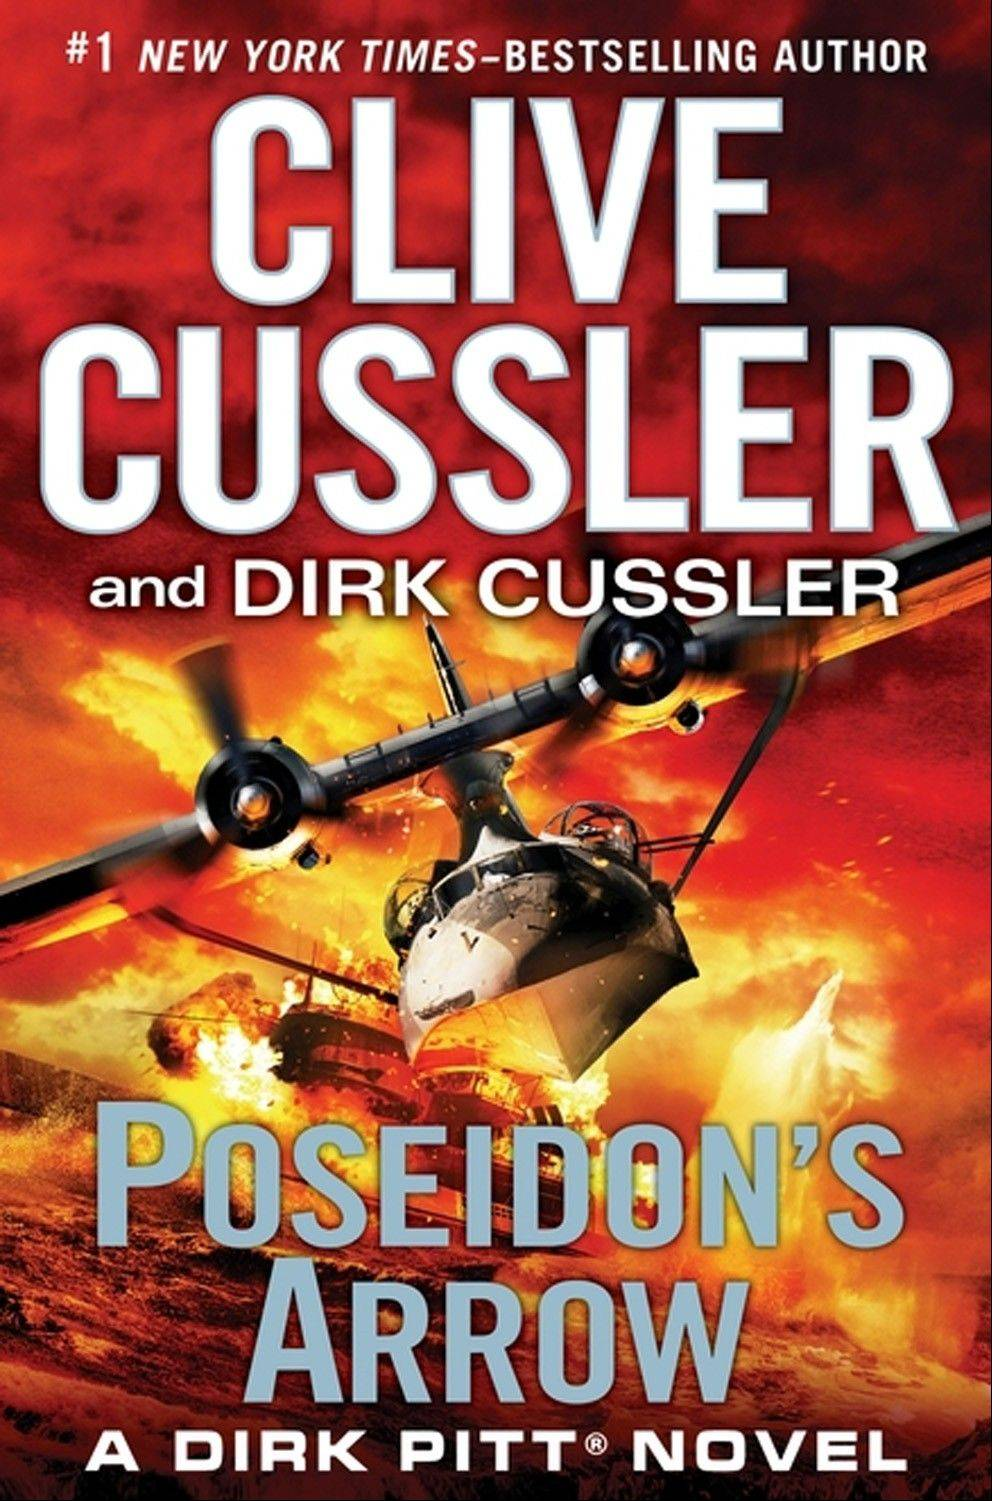 """Poseidon's Arrow"" by Clive Cussler and Dirk Cussler"